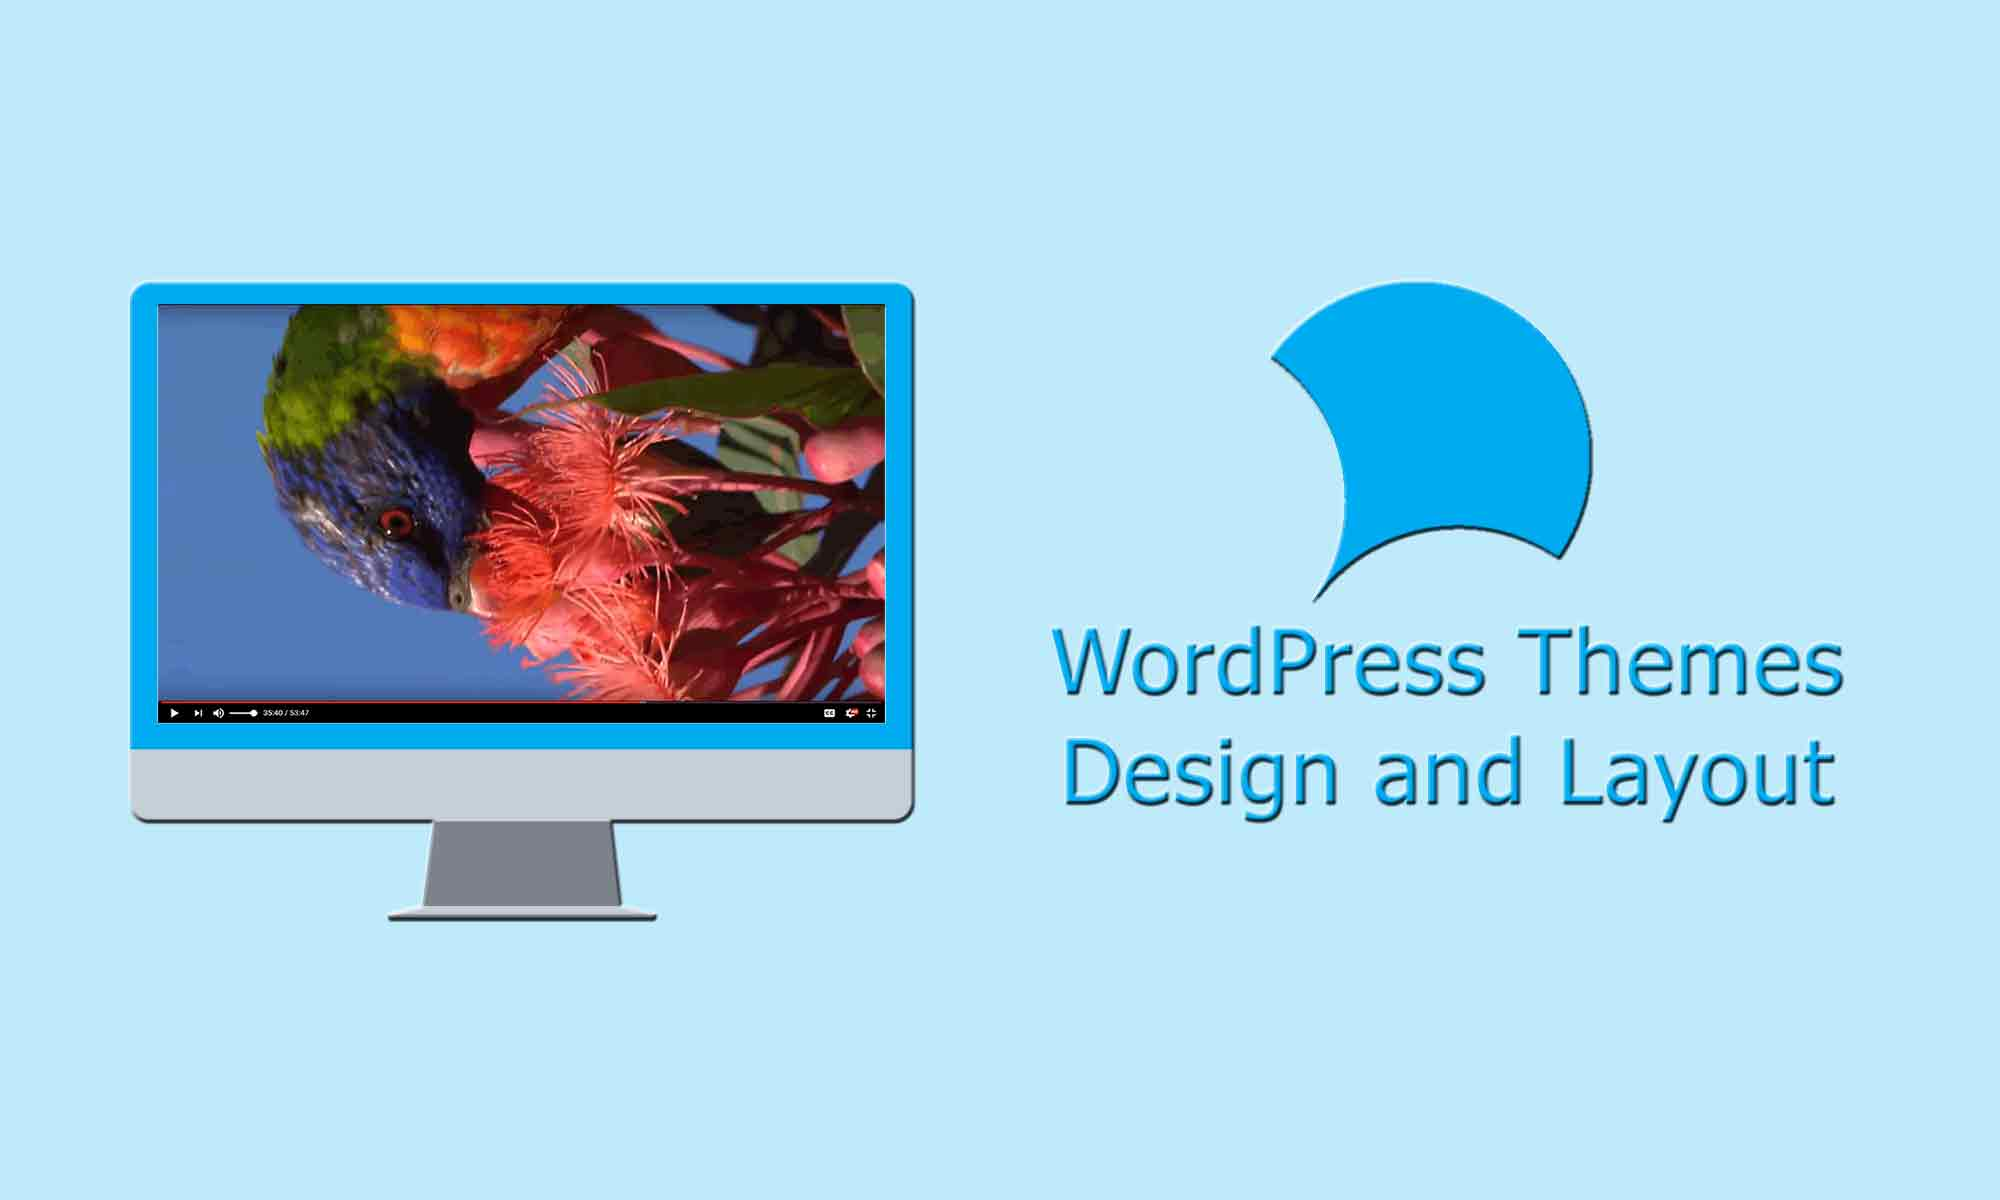 WordPress Themes Design and Layout. Our Specialist Makes this Process More than 10 Years